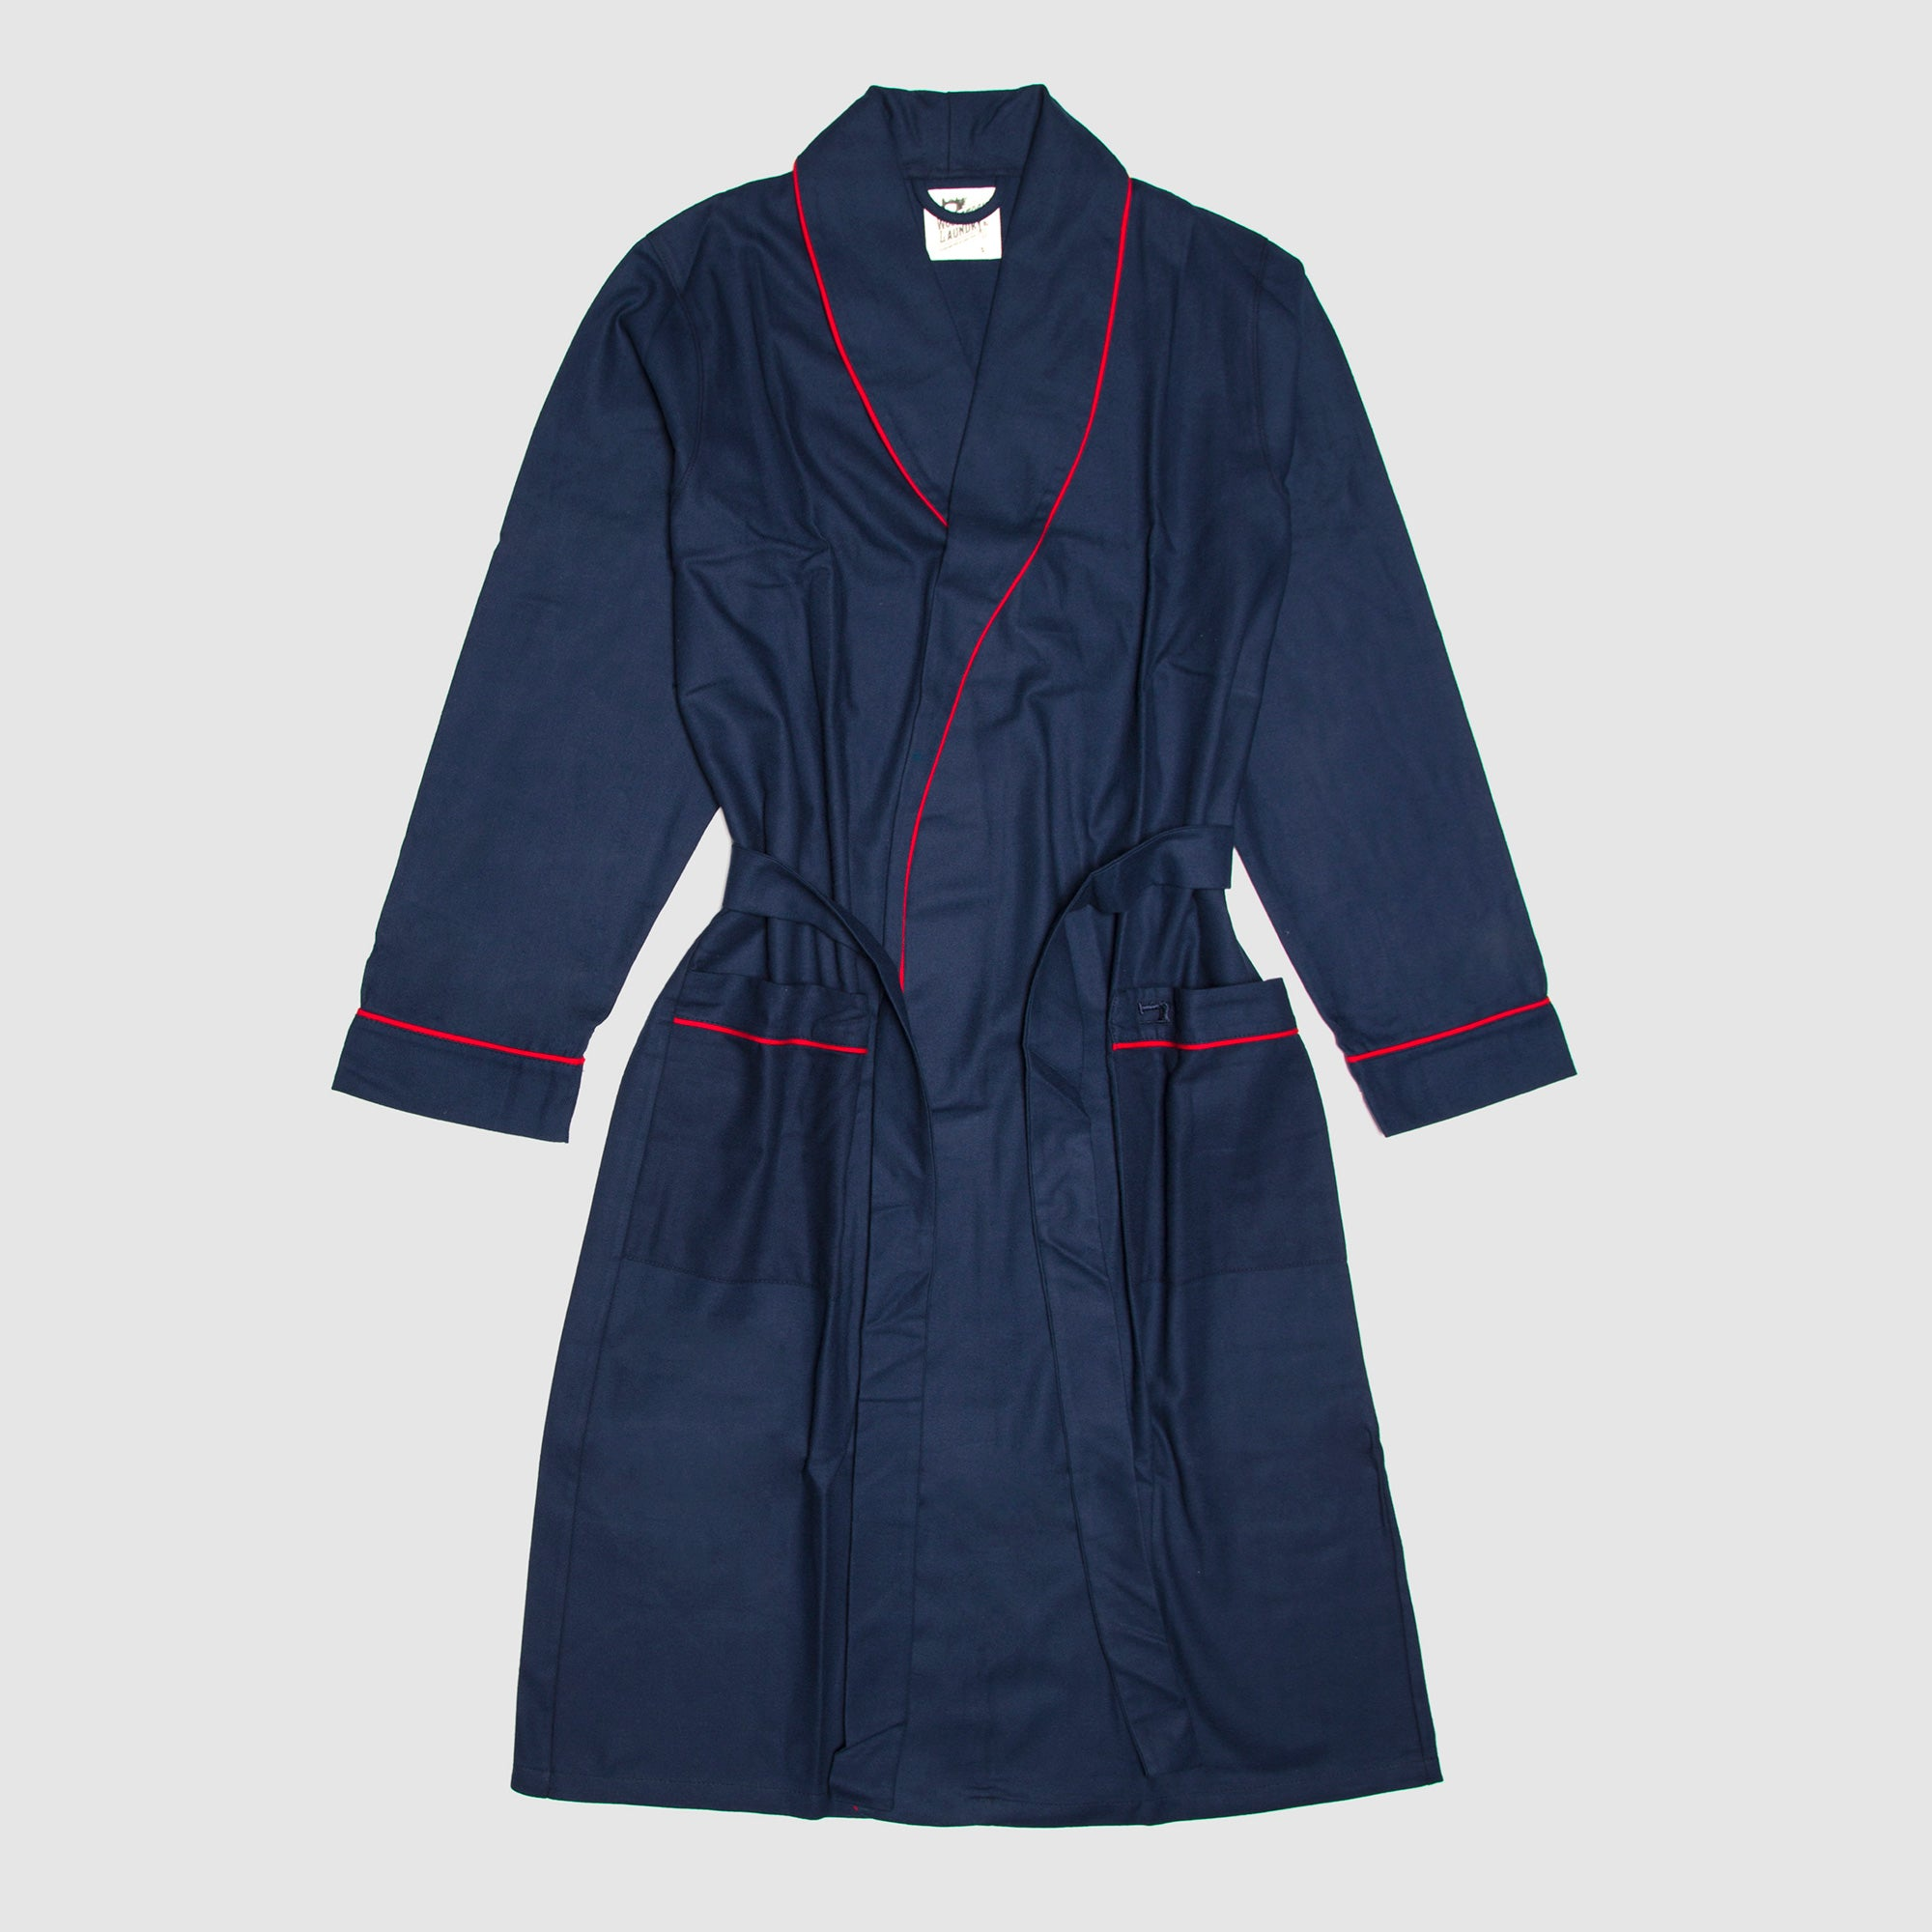 Gown Navy Flannel Red Piping - Woodstock Laundry